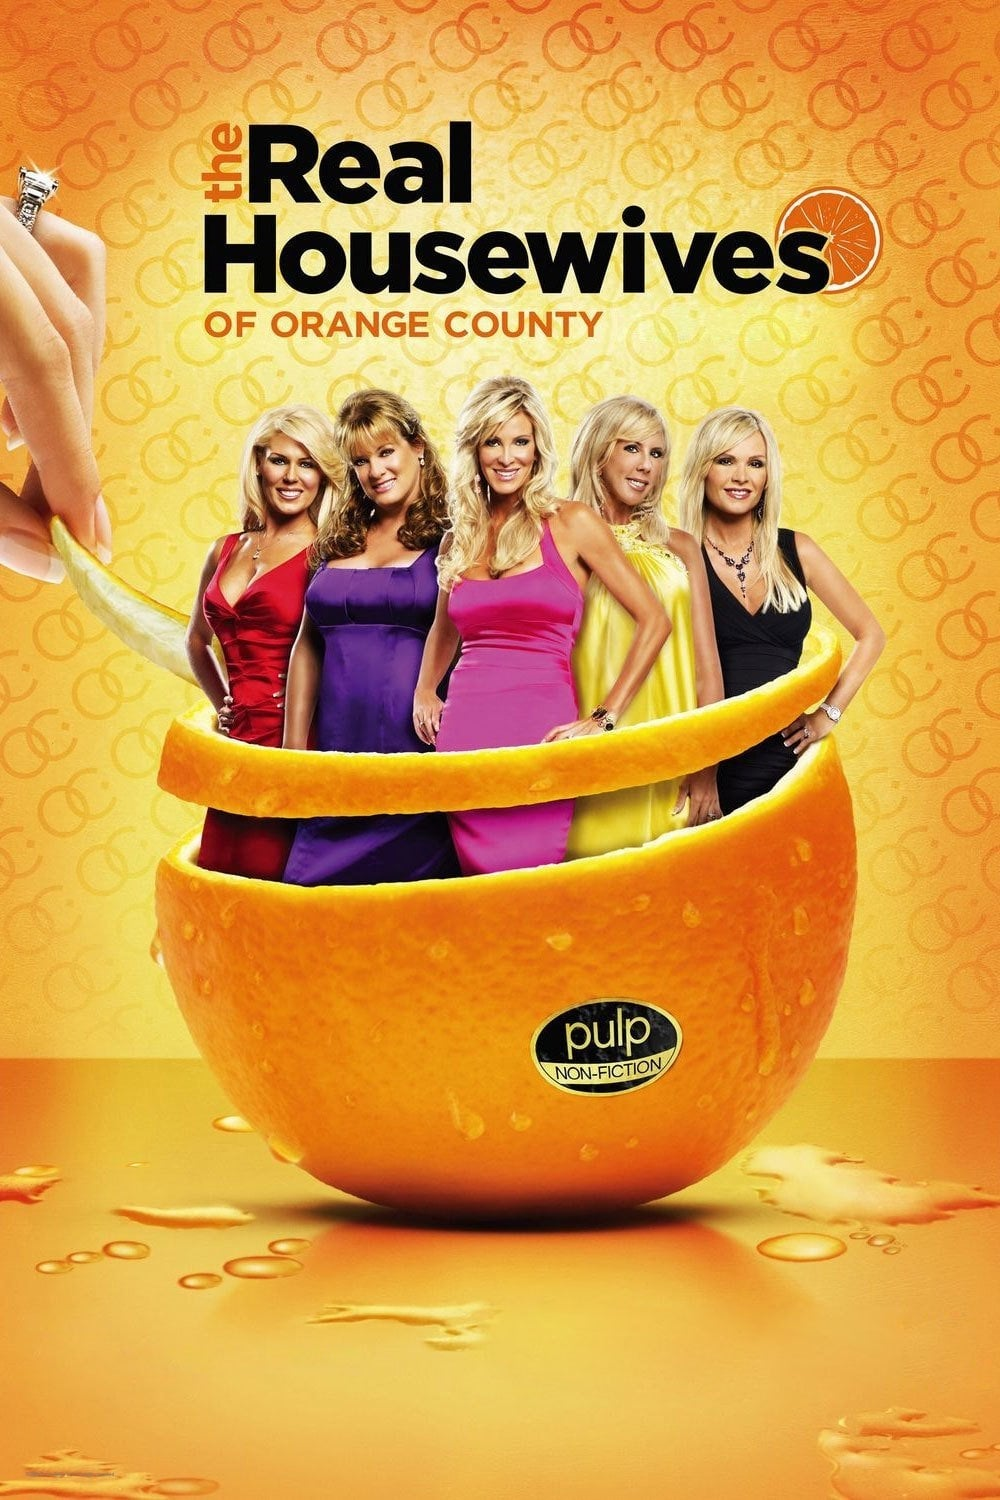 The Real Housewives of Orange County Season 10